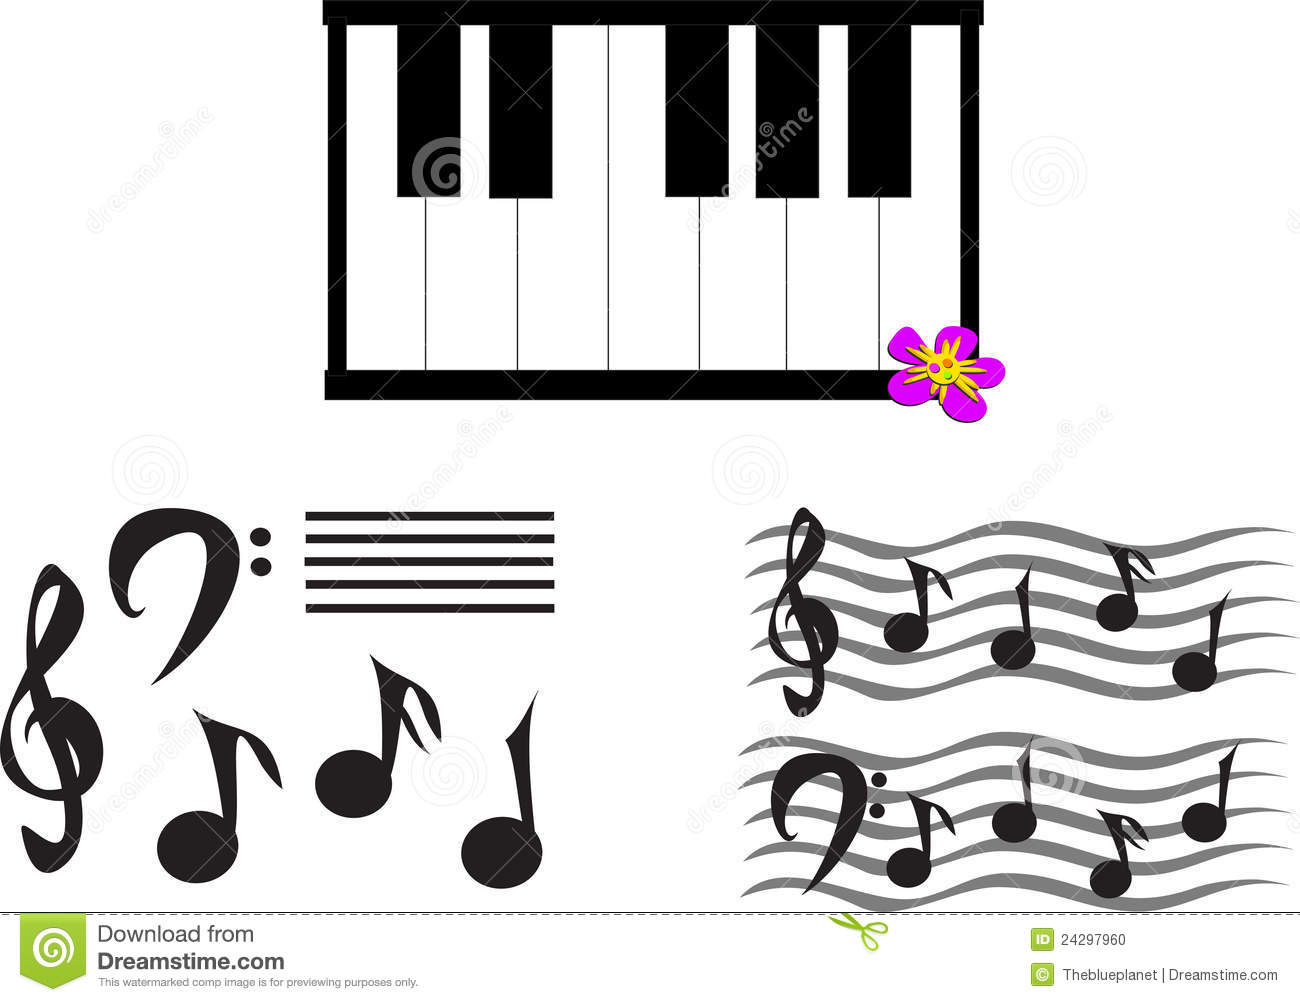 Mix Of Musical Notes Symbols And Keyboard Stock Photo